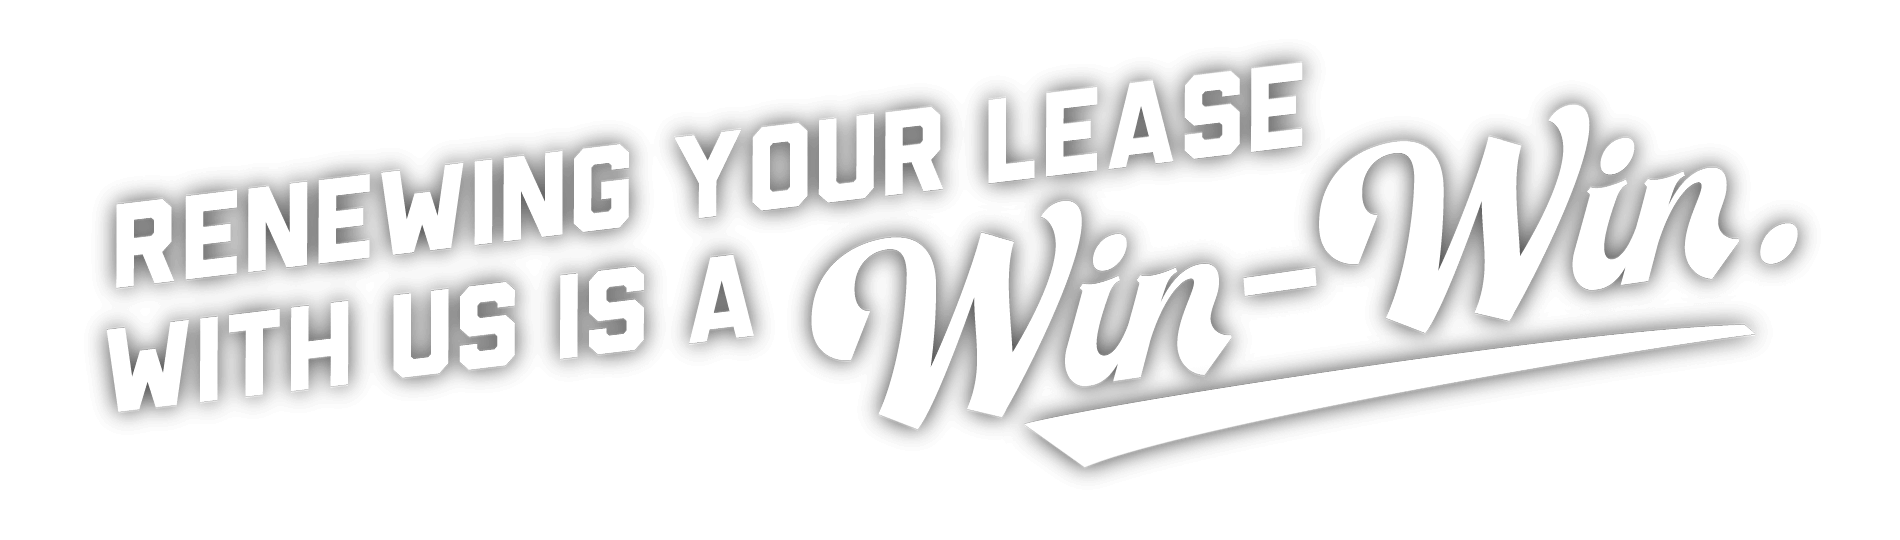 Renewing your lease with us is a win-win.